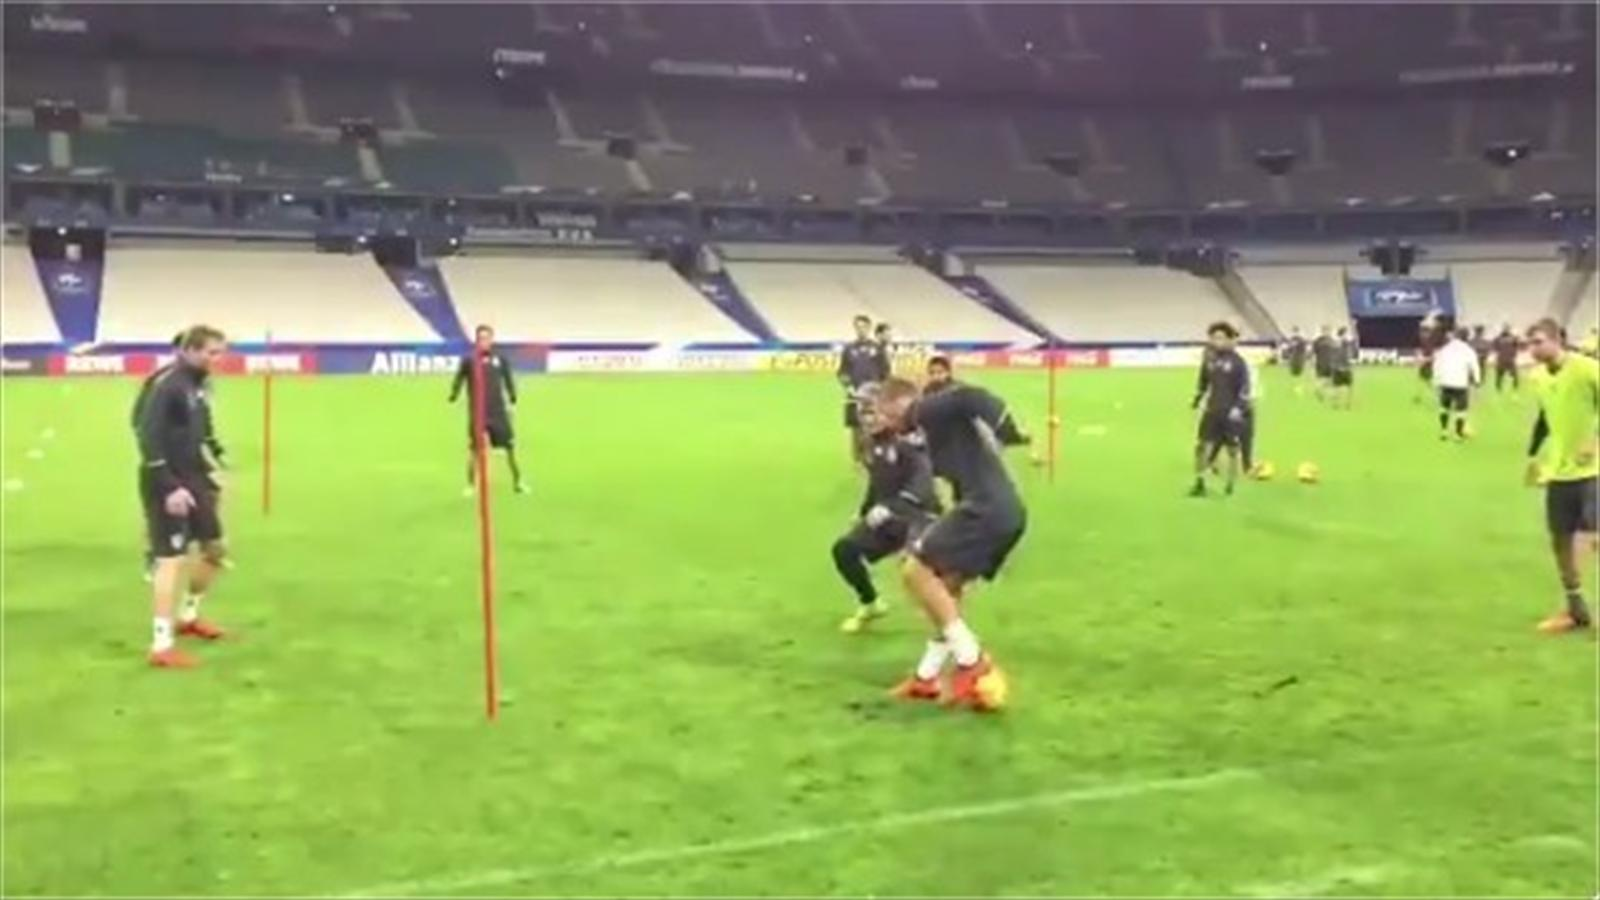 Lukas Podolski performing a trick in Germany training (Twitter)